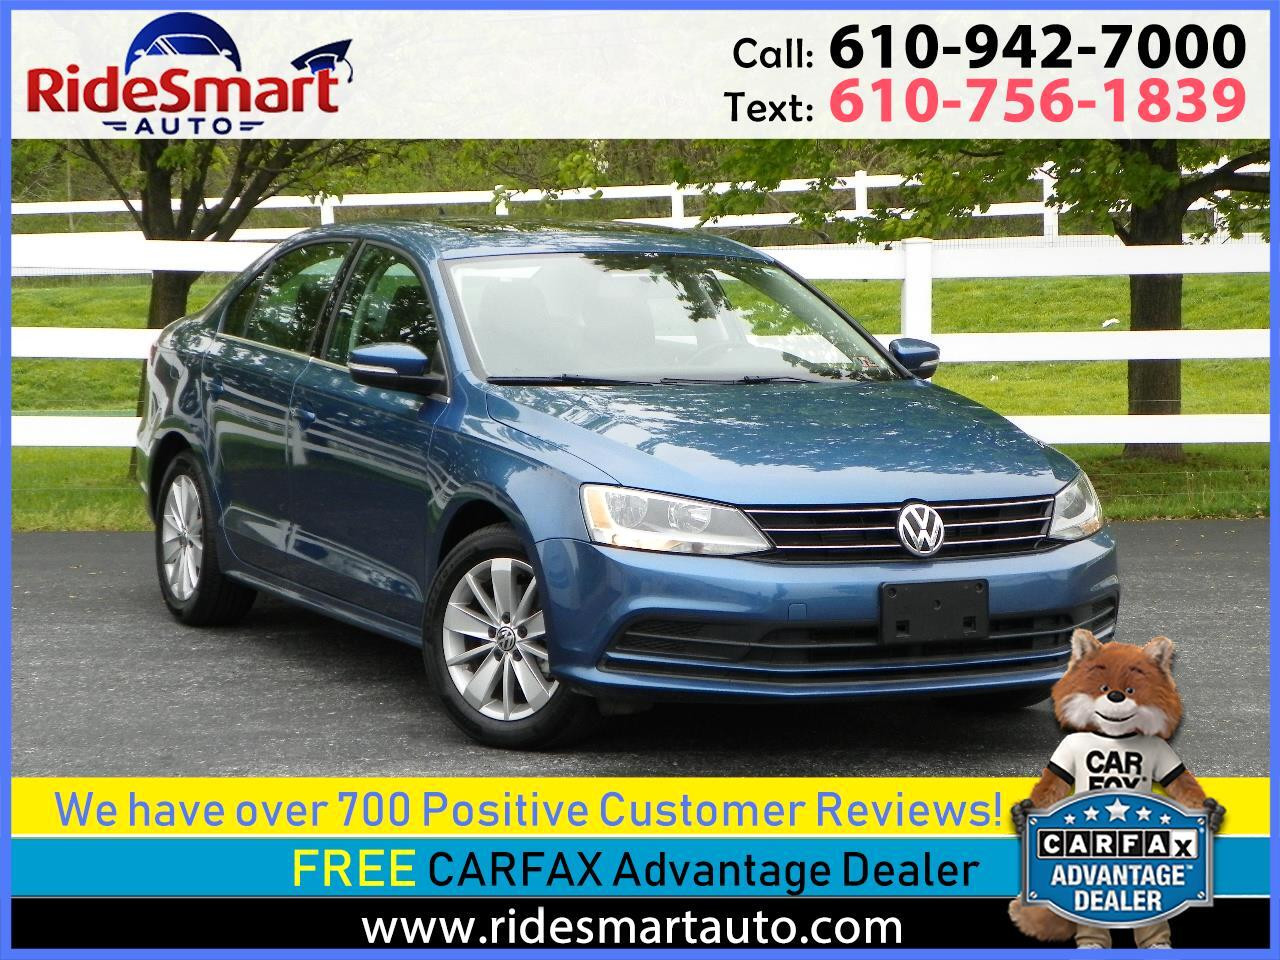 2015 Volkswagen Jetta TDI SE Leather-Sunroof-Bluetooth